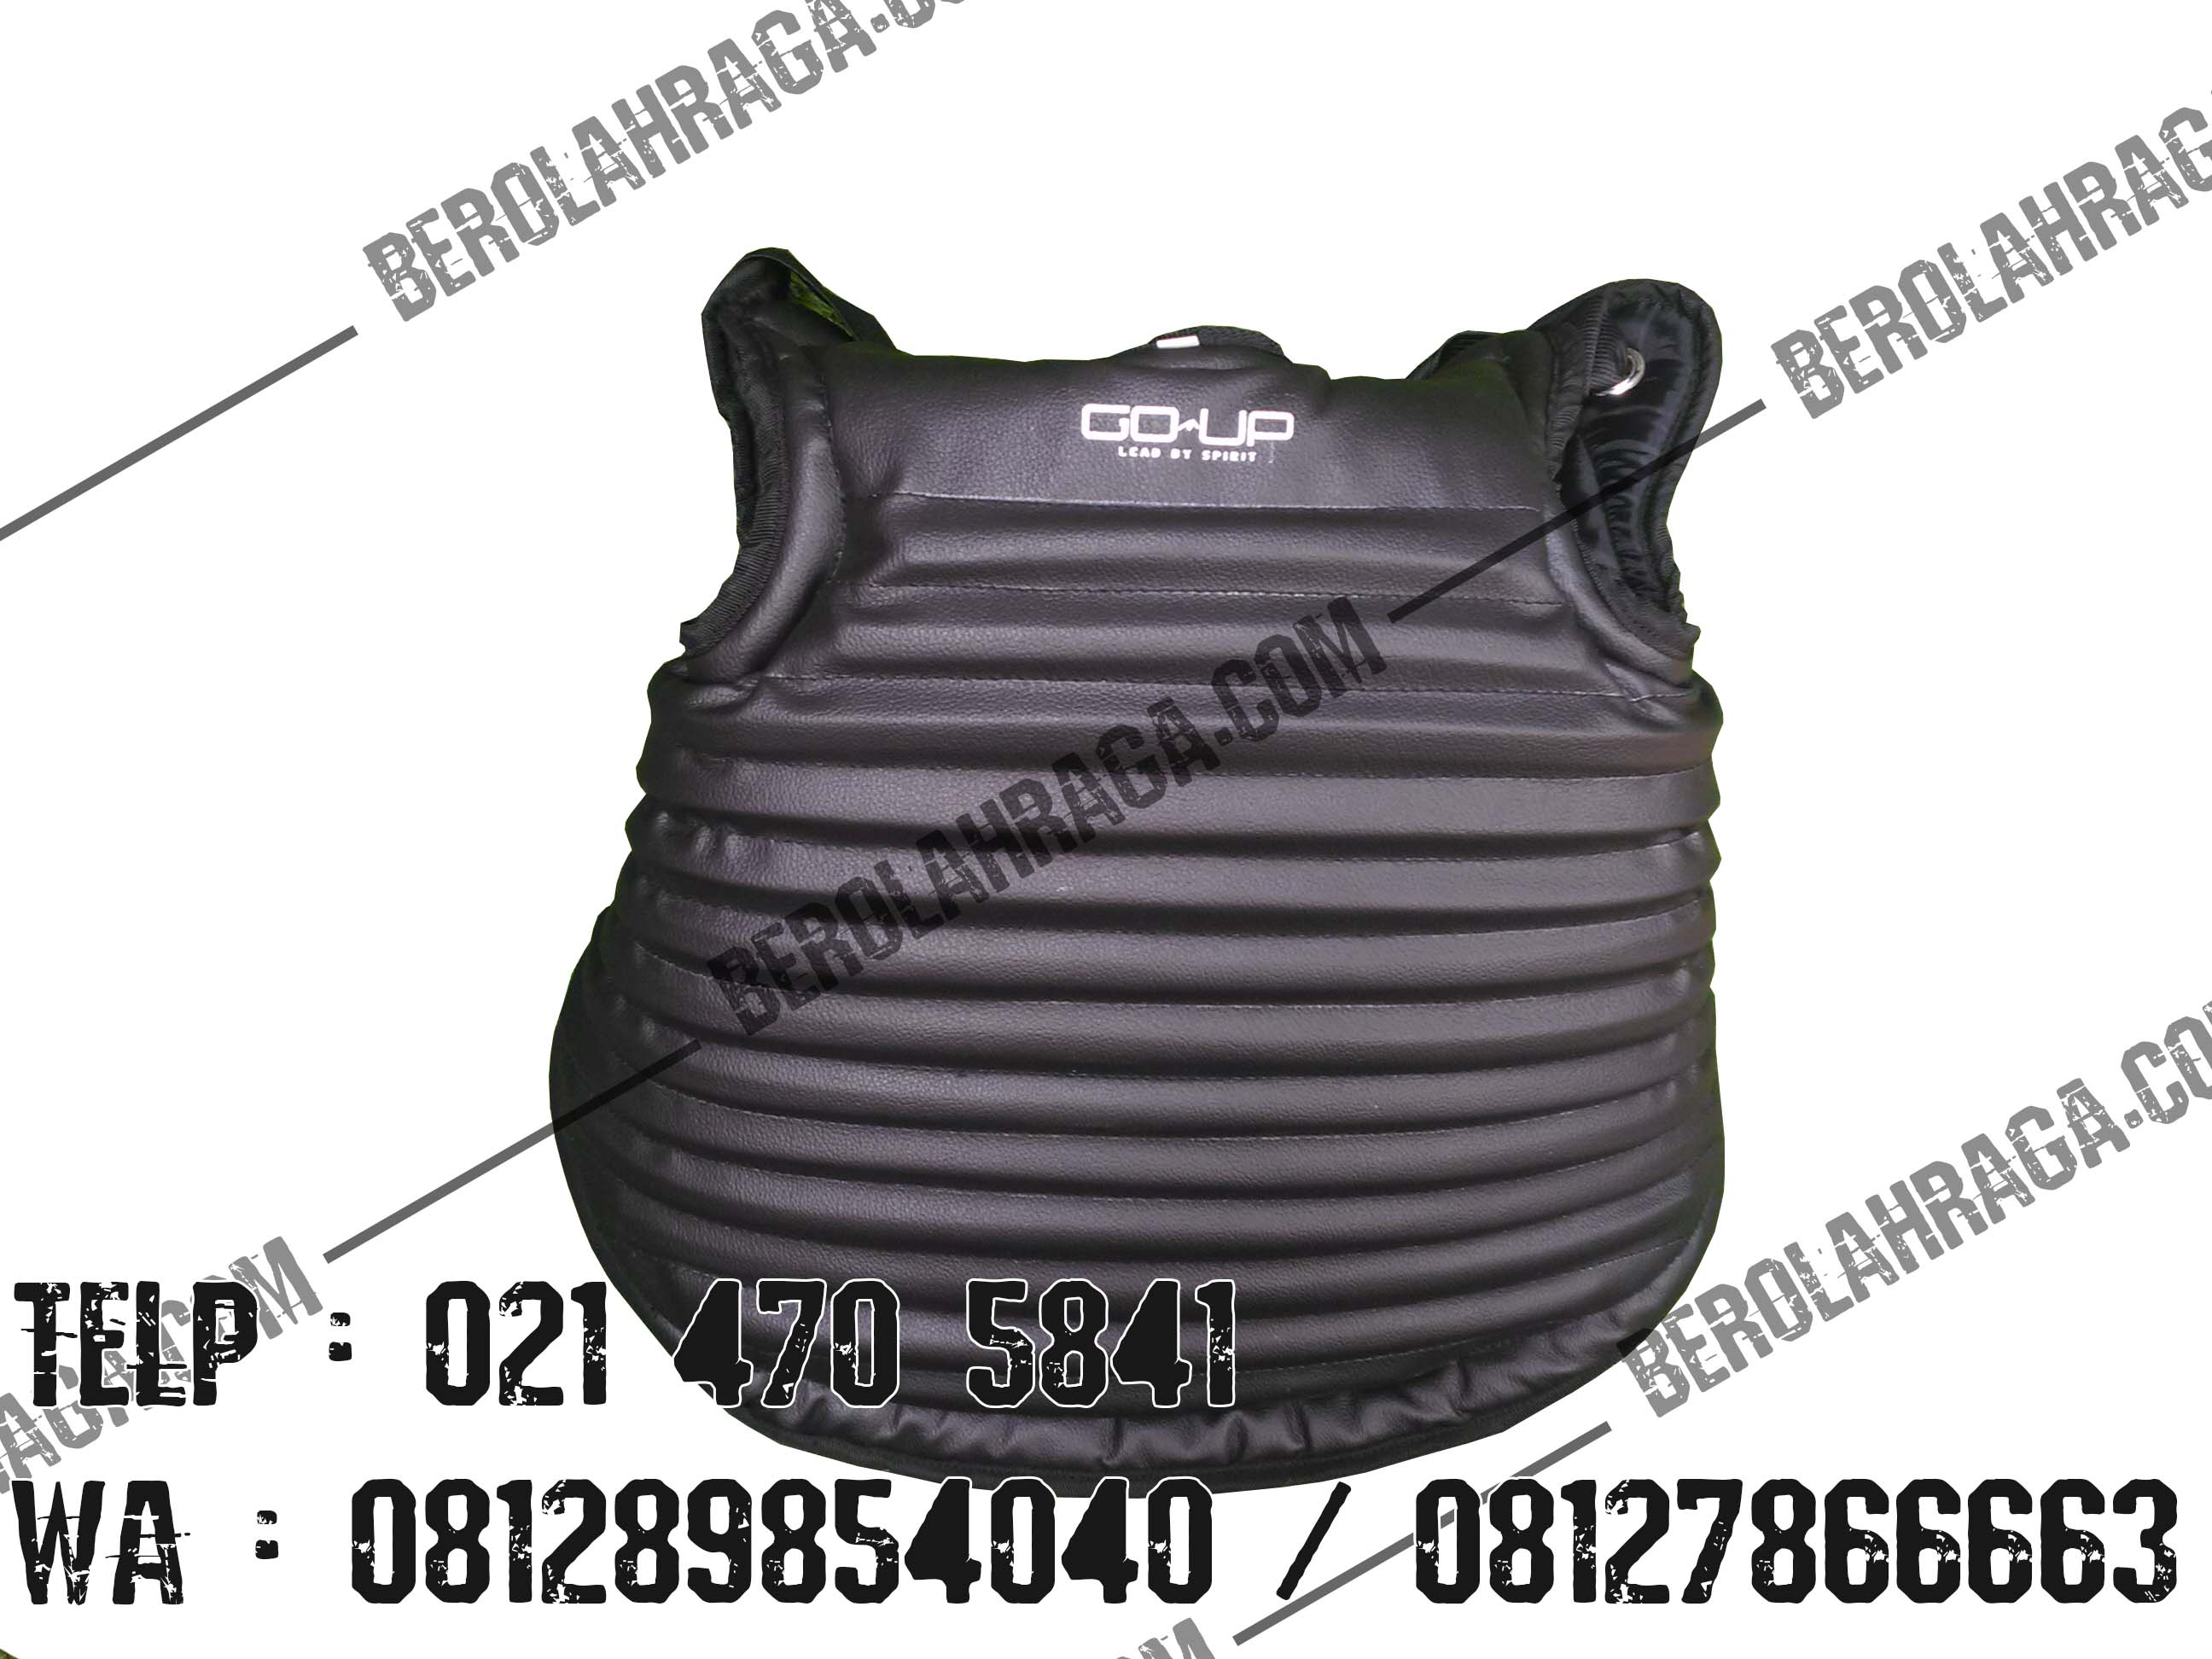 2. Body Protector Silat Go-Up